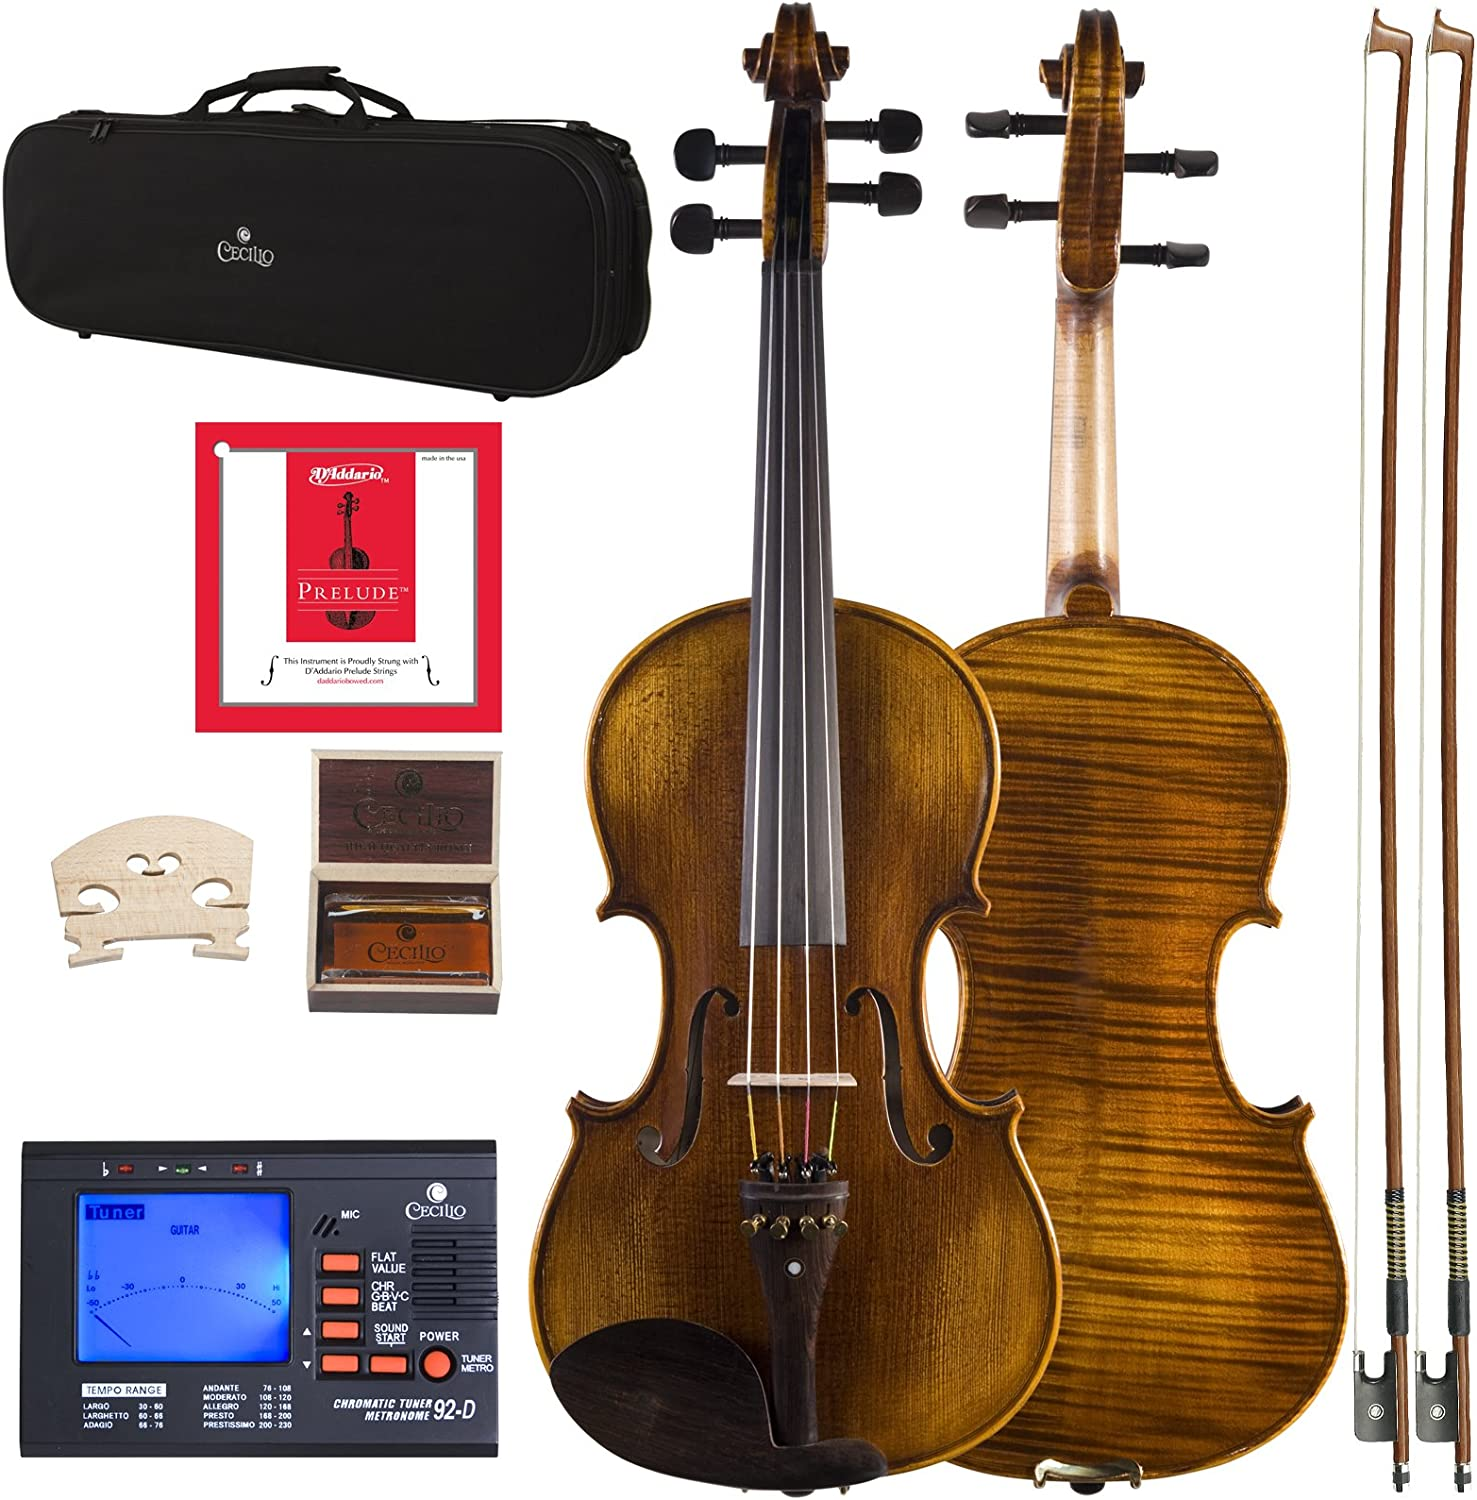 Beauty products Cecilio 15.5 Inch Viola Strung F with Cash special price D'Addario Prelude Strings